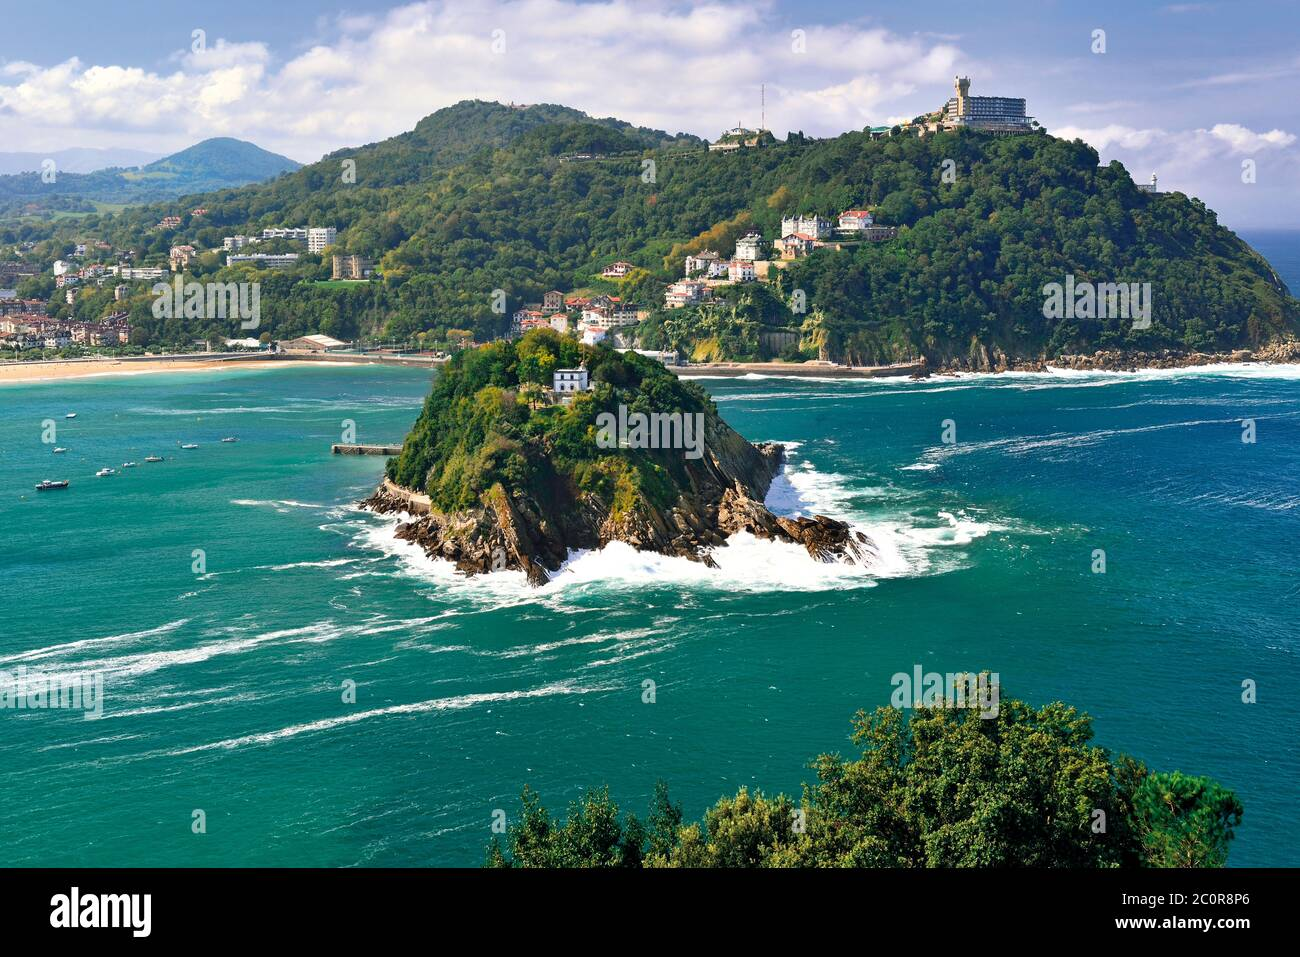 View to small green island in the middle of green ocean and hill with building at the top surrounded by sand beach (San Sebastian) Stock Photo